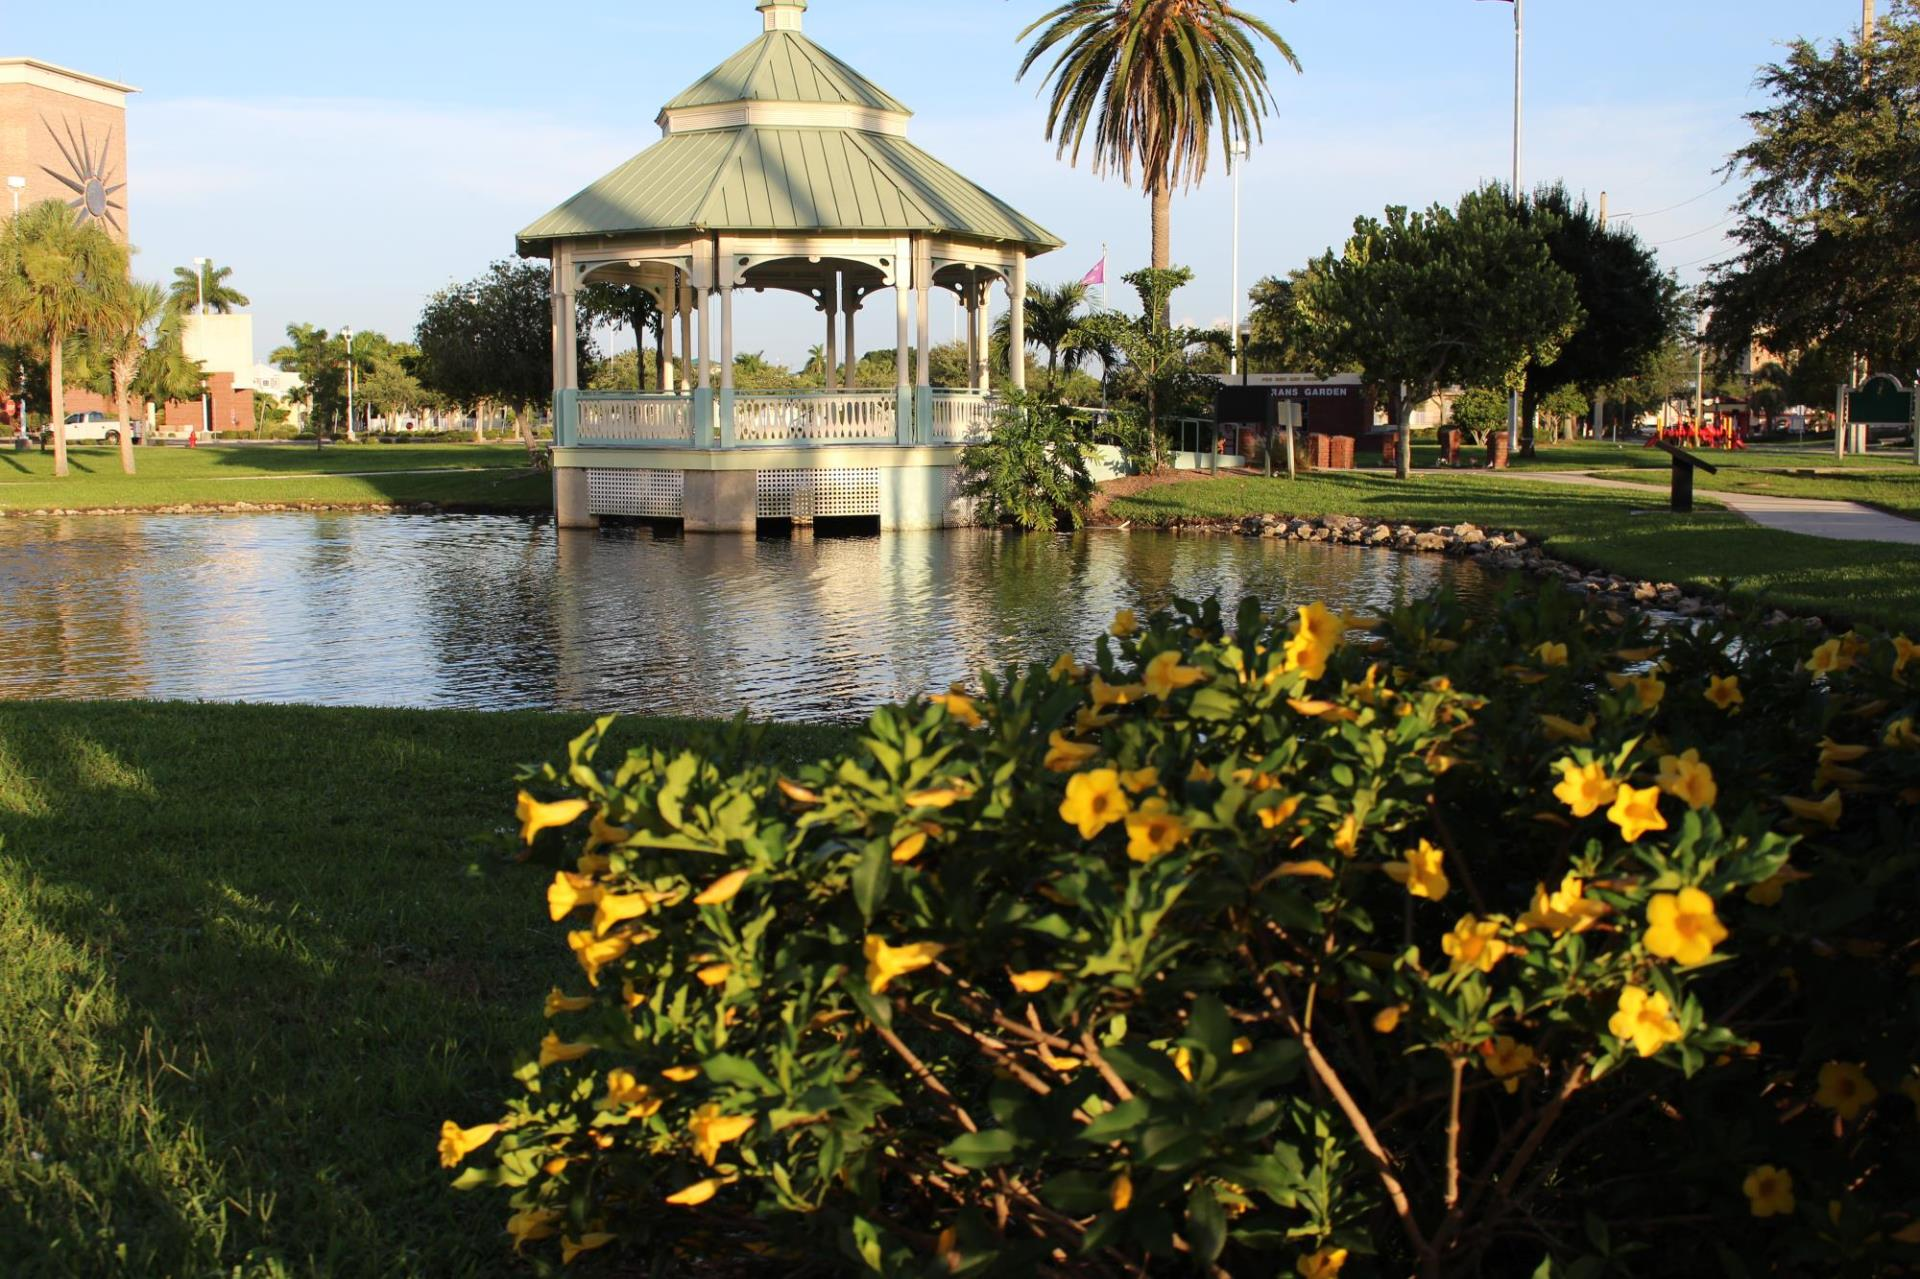 Veterans park gazebo and lake